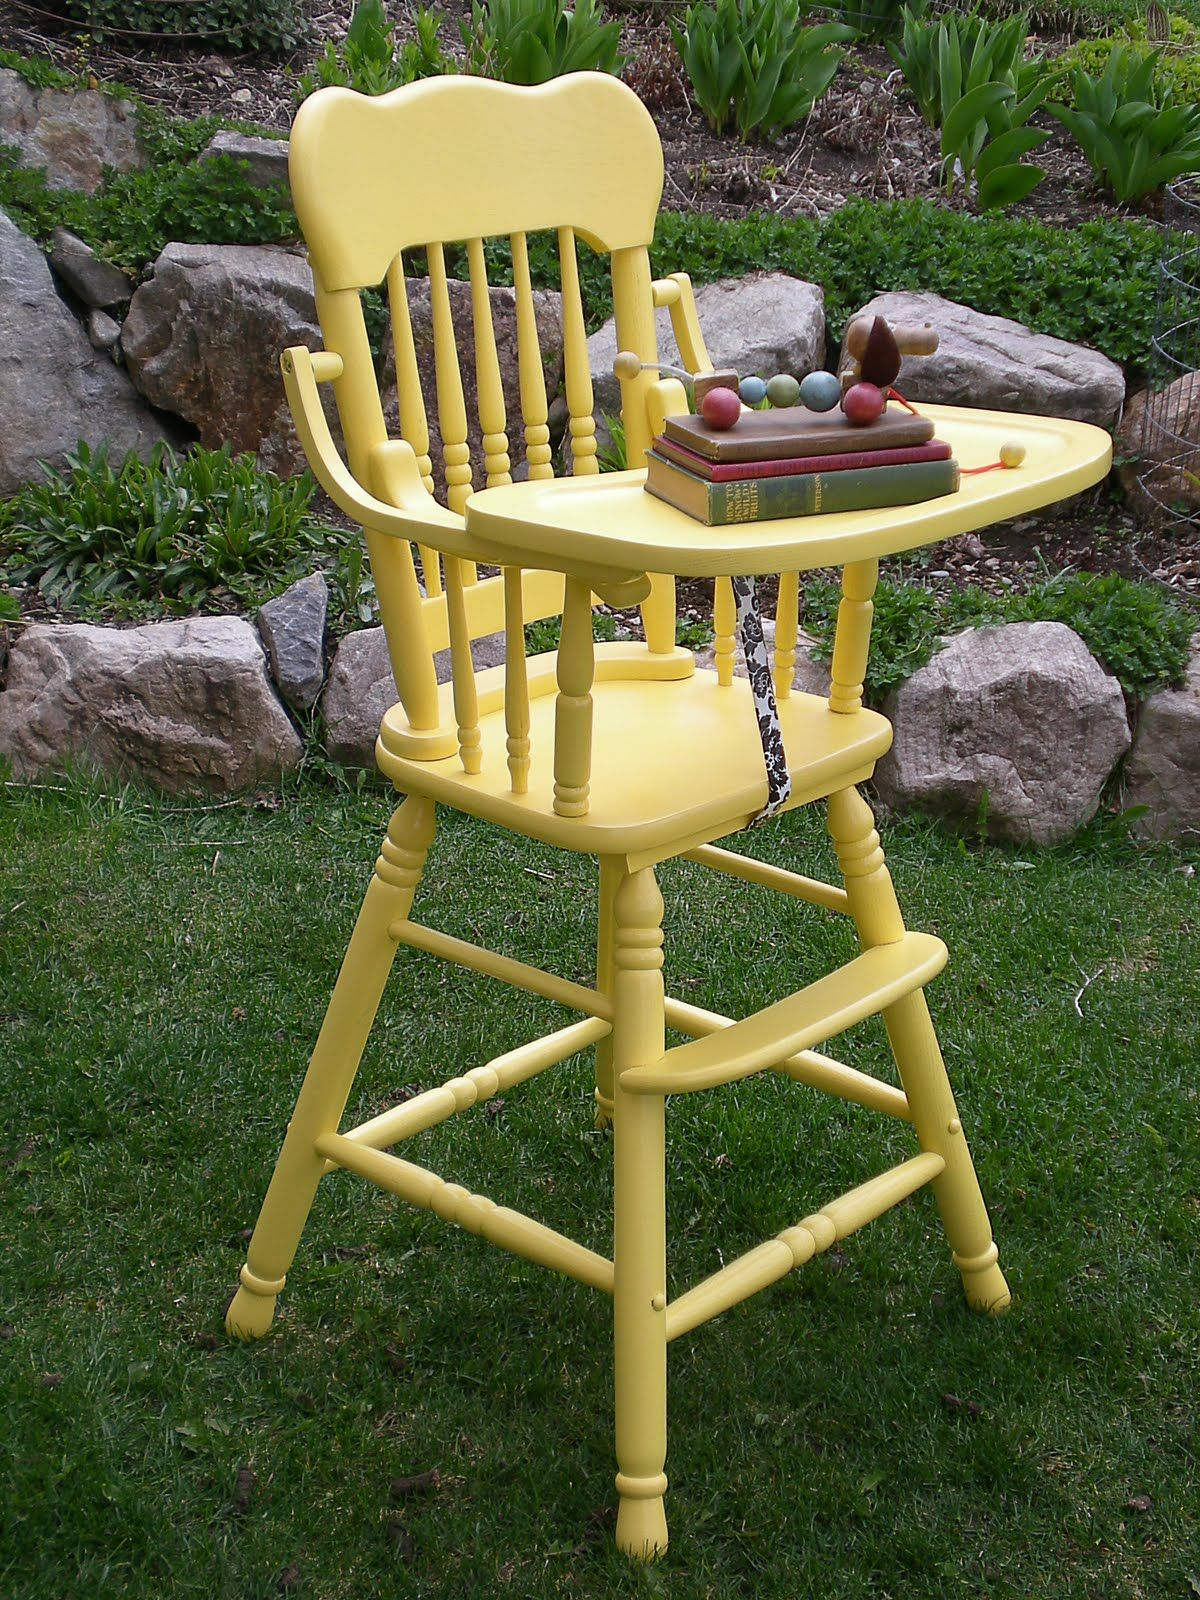 Highchairs like these except with a cute vinyl patterned